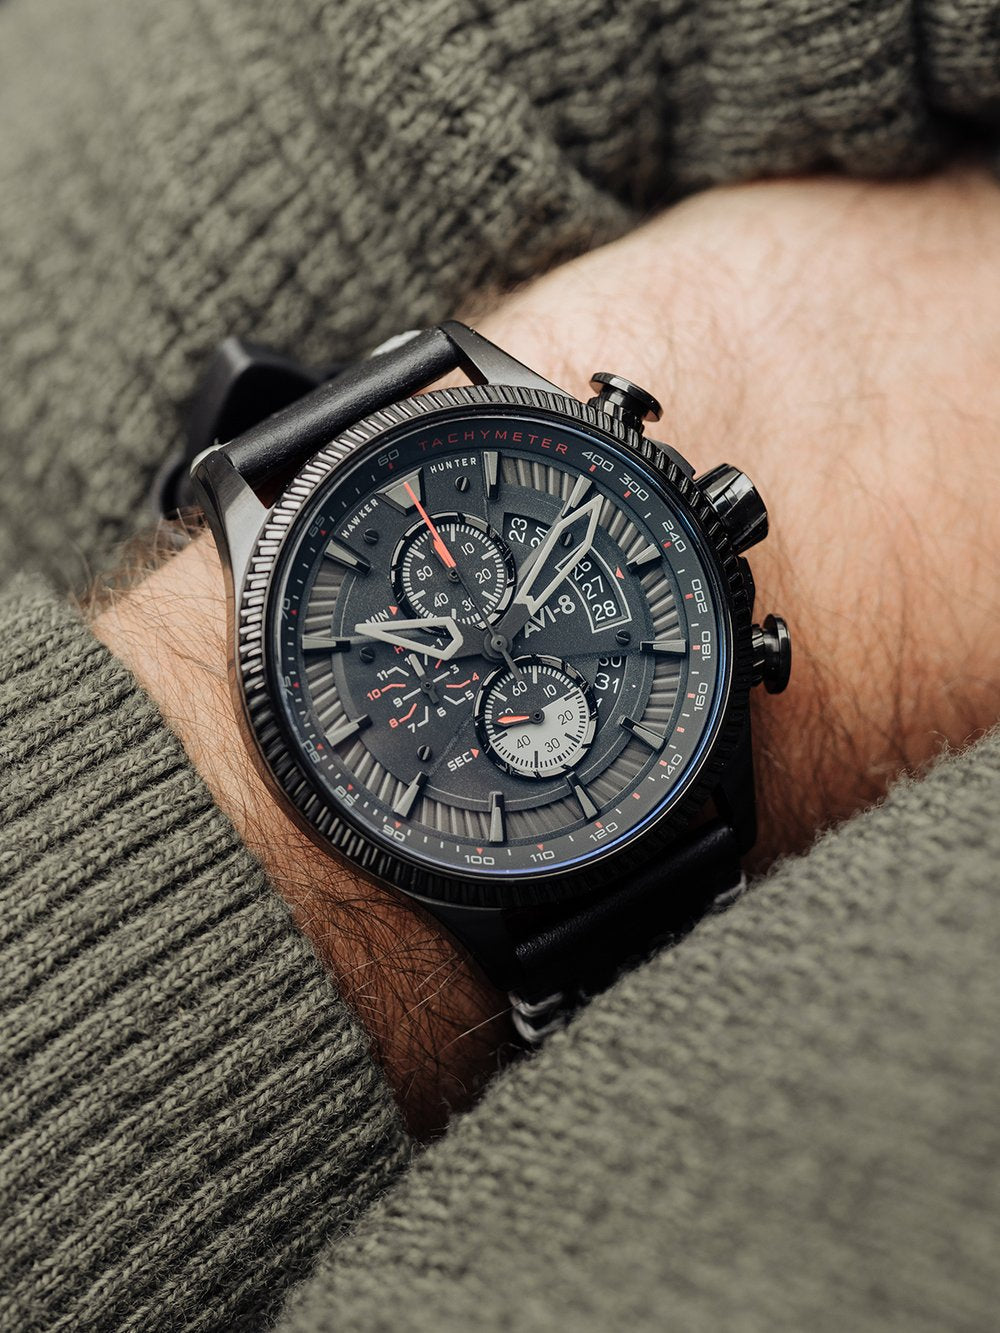 Hawker Hunter - Avon Chronograph Edition (Stealth Black)